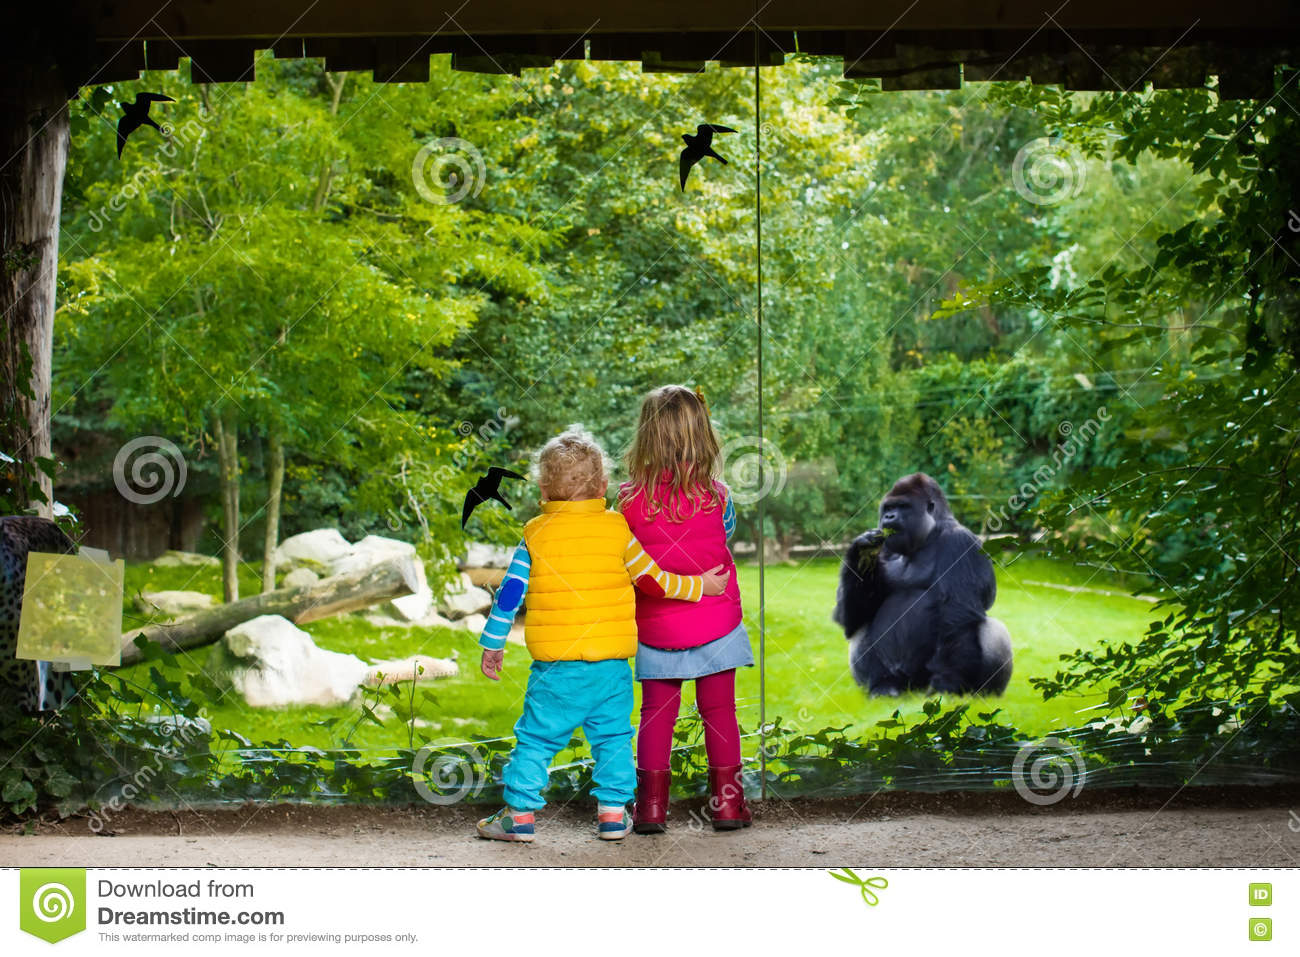 Kids watching animals in the zoo